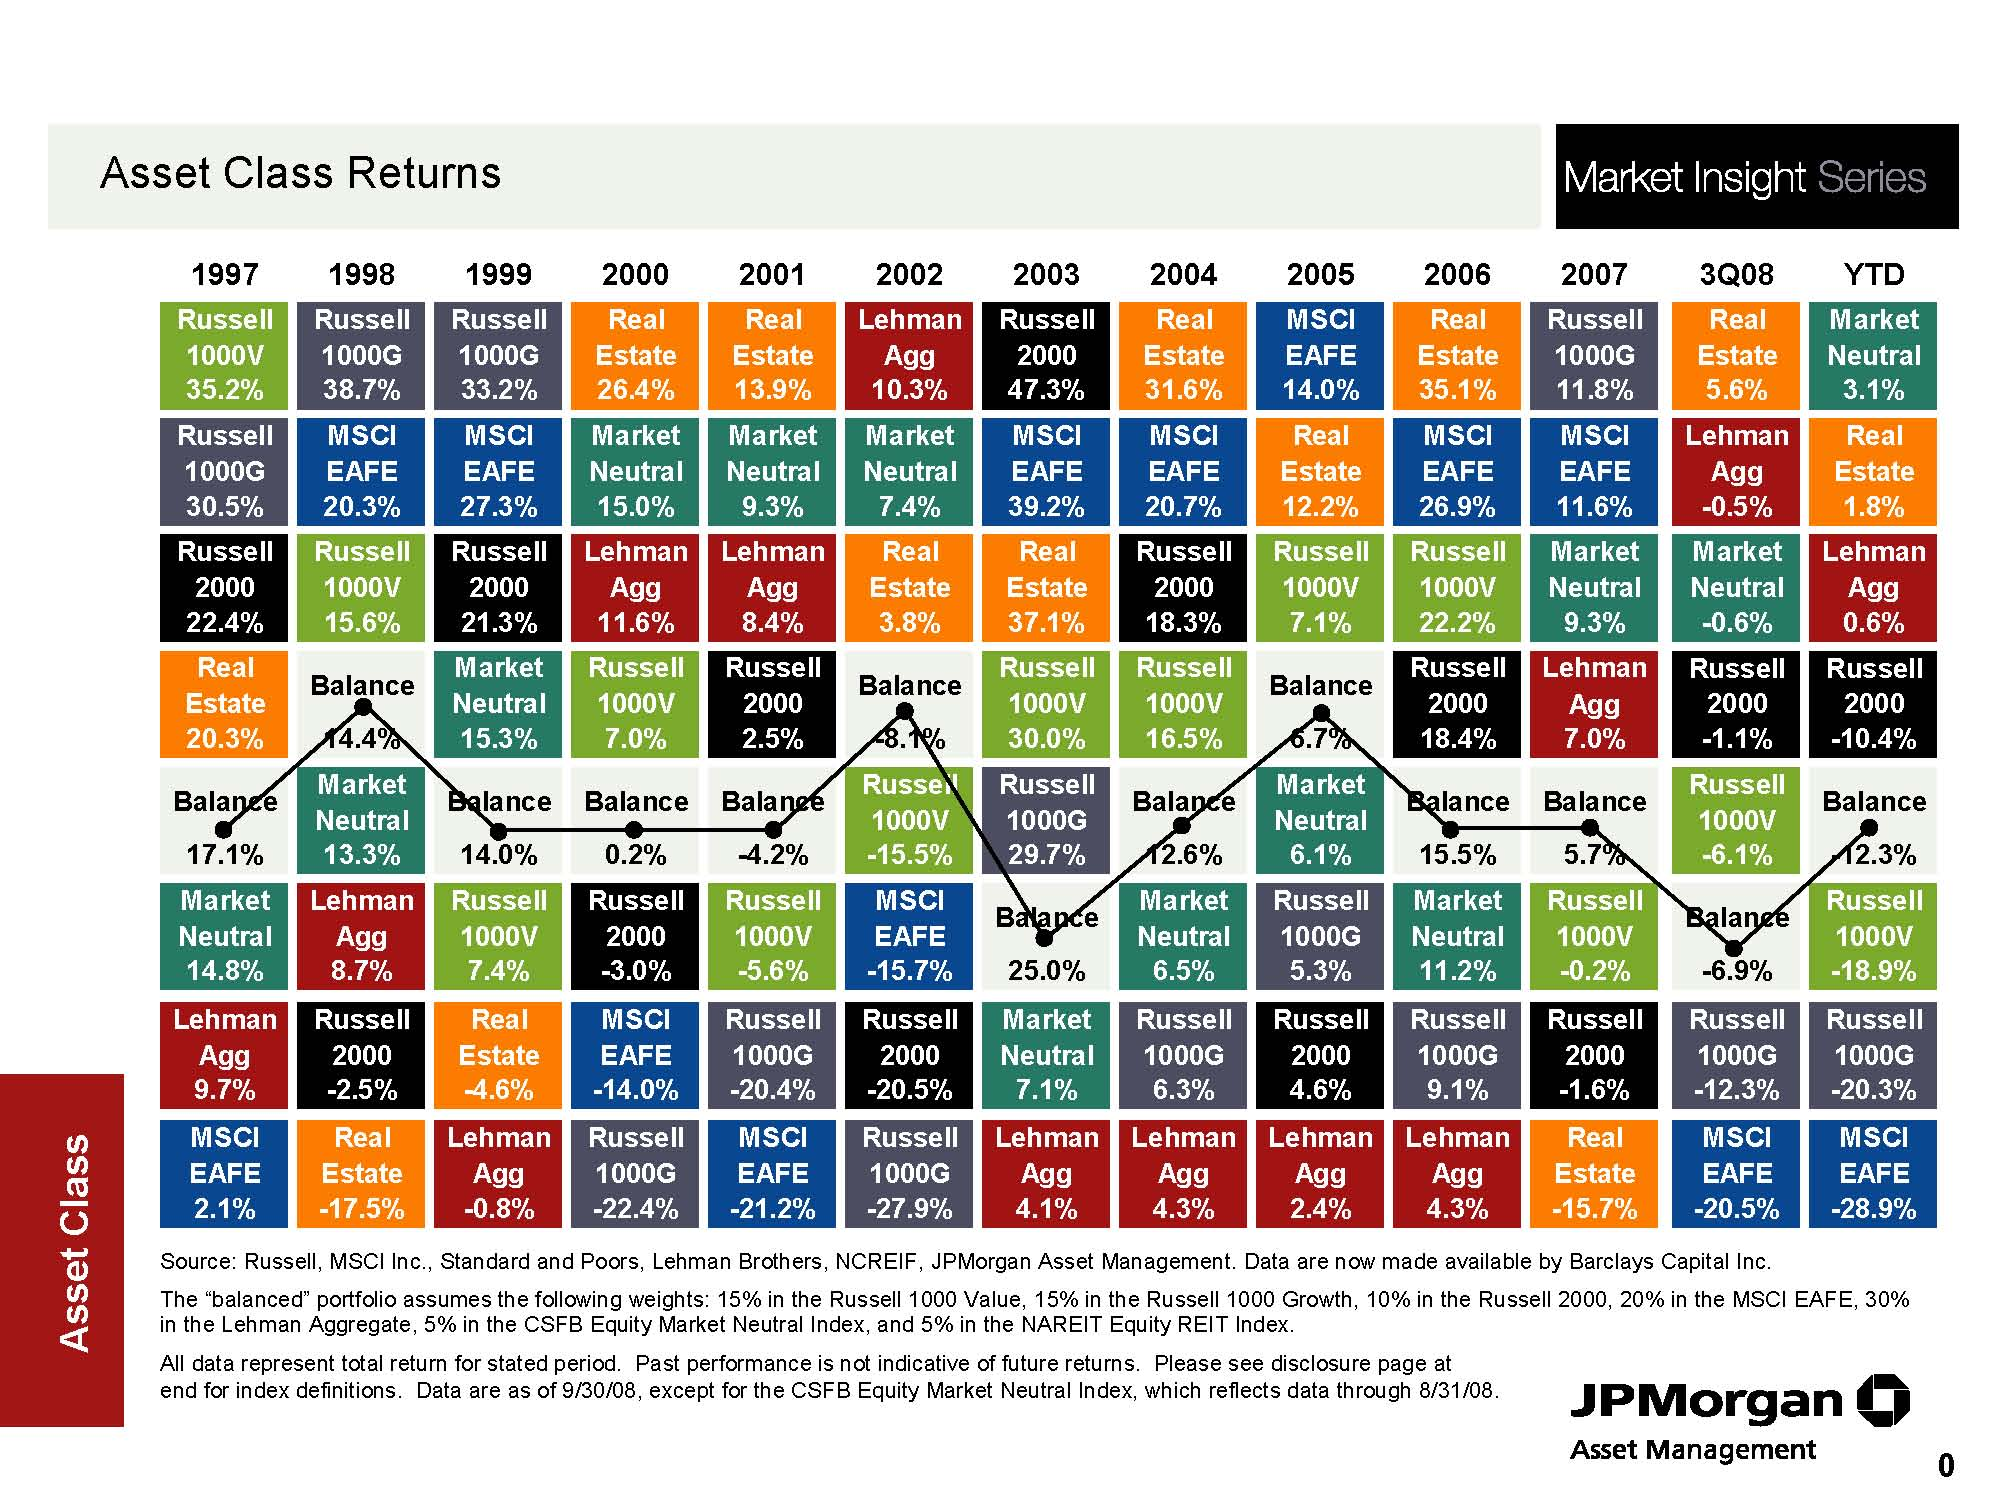 jp morgan guide to the markets q3 2017